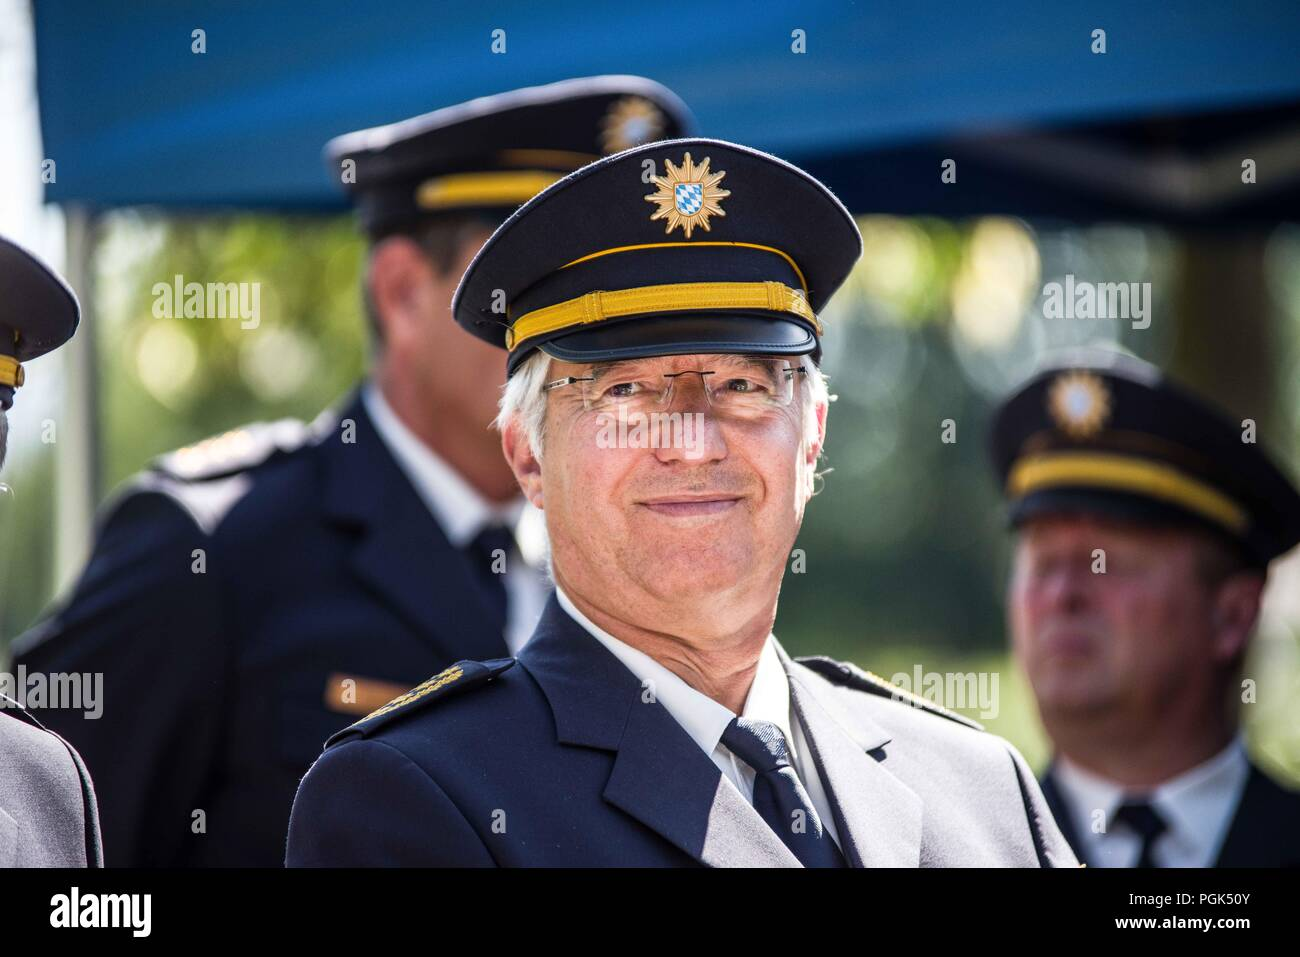 Freilassing, Bavaria, Germany. 27th Aug, 2018. WILHELM SCHMIDBAUER, Bavarian Police President. German Interior Minister HORST SEEHOFER and Bavarian Interior Minister JOACHIM HERRMANN made appearances at the Freilassing Saalbruecke border crossing between Germany and Austria to discuss the results of the newly-formed Bavarian Grenzschutzpolizei (Border Protection Police).Despite this, the Federal Pol - Stock Image